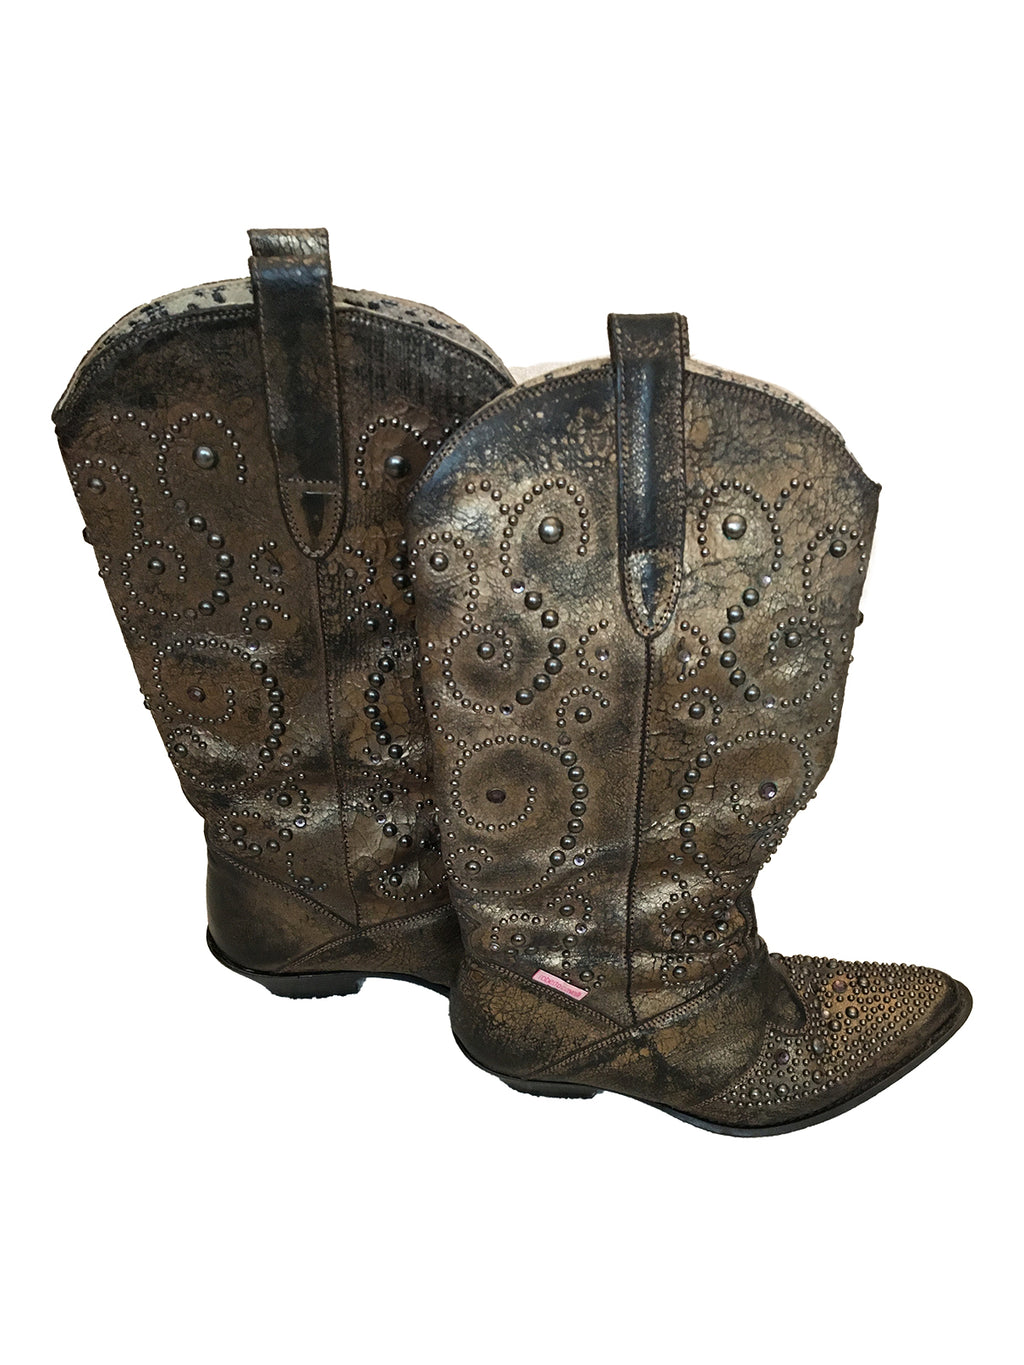 ROBERTO CAVALLI Angels Texan Boots in Leather with Diamonds and Metals Applications Size 38 (EU)